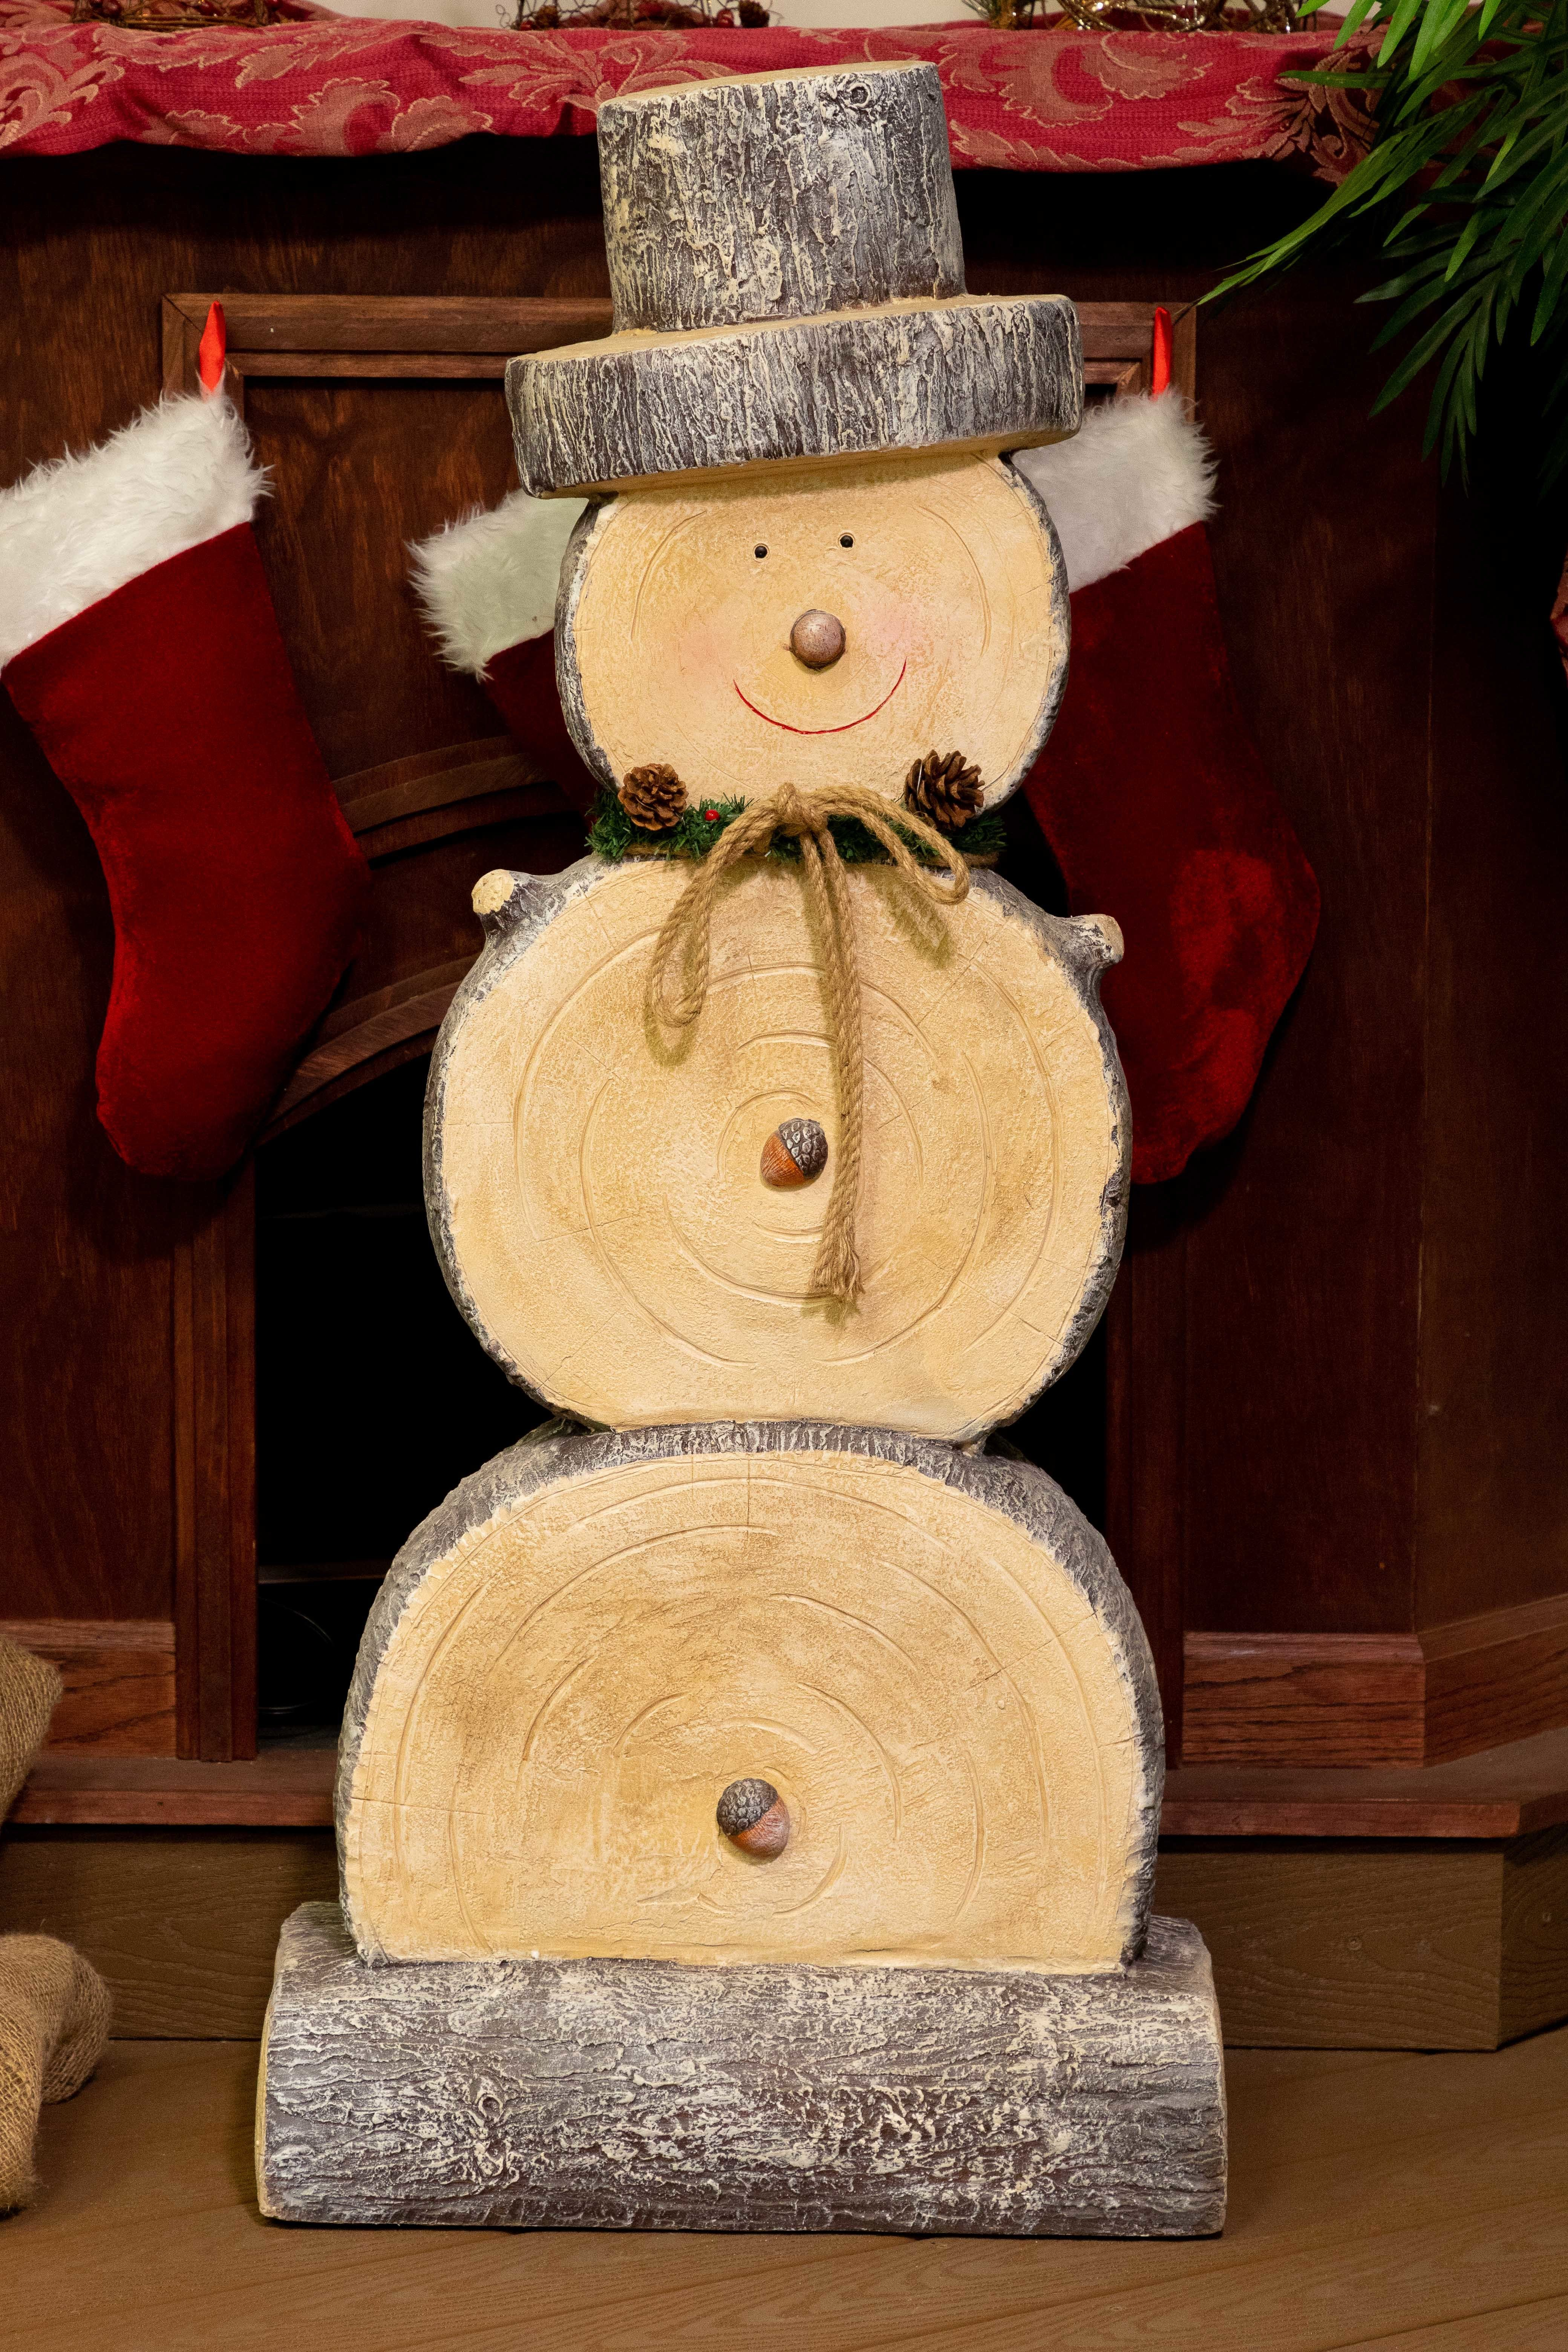 Wooden Snowman Statue Christmas Wood Crafts Christmas Crafts Decorations Wooden Christmas Crafts